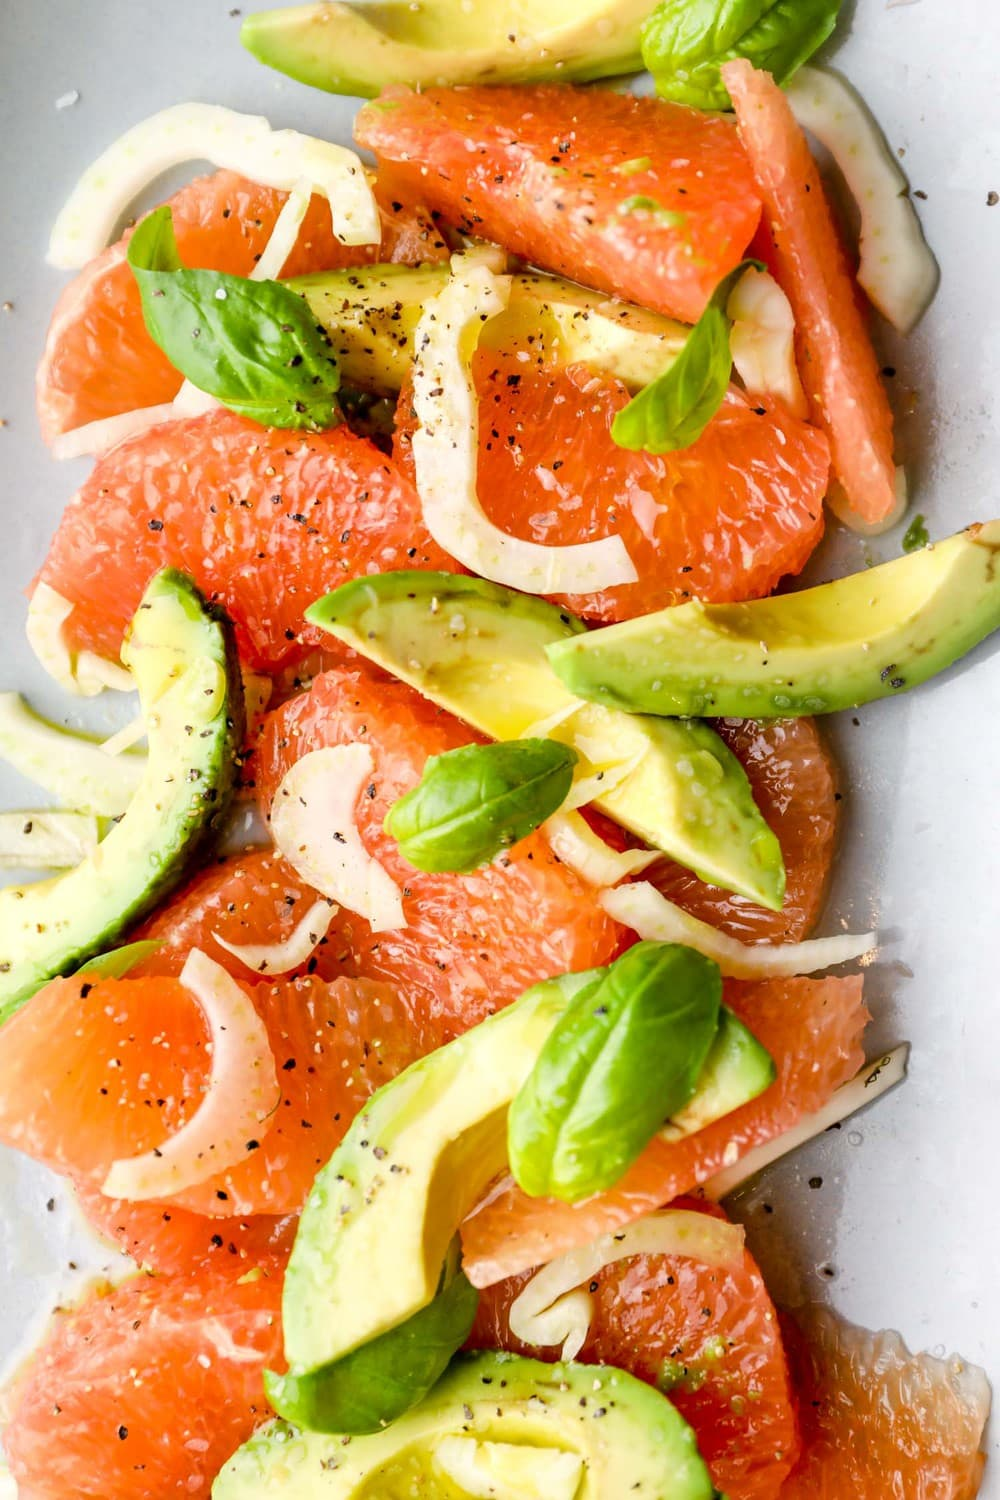 Grapefruit Avocado Salad arranged on a serving plate with a drizzle of olive oil.